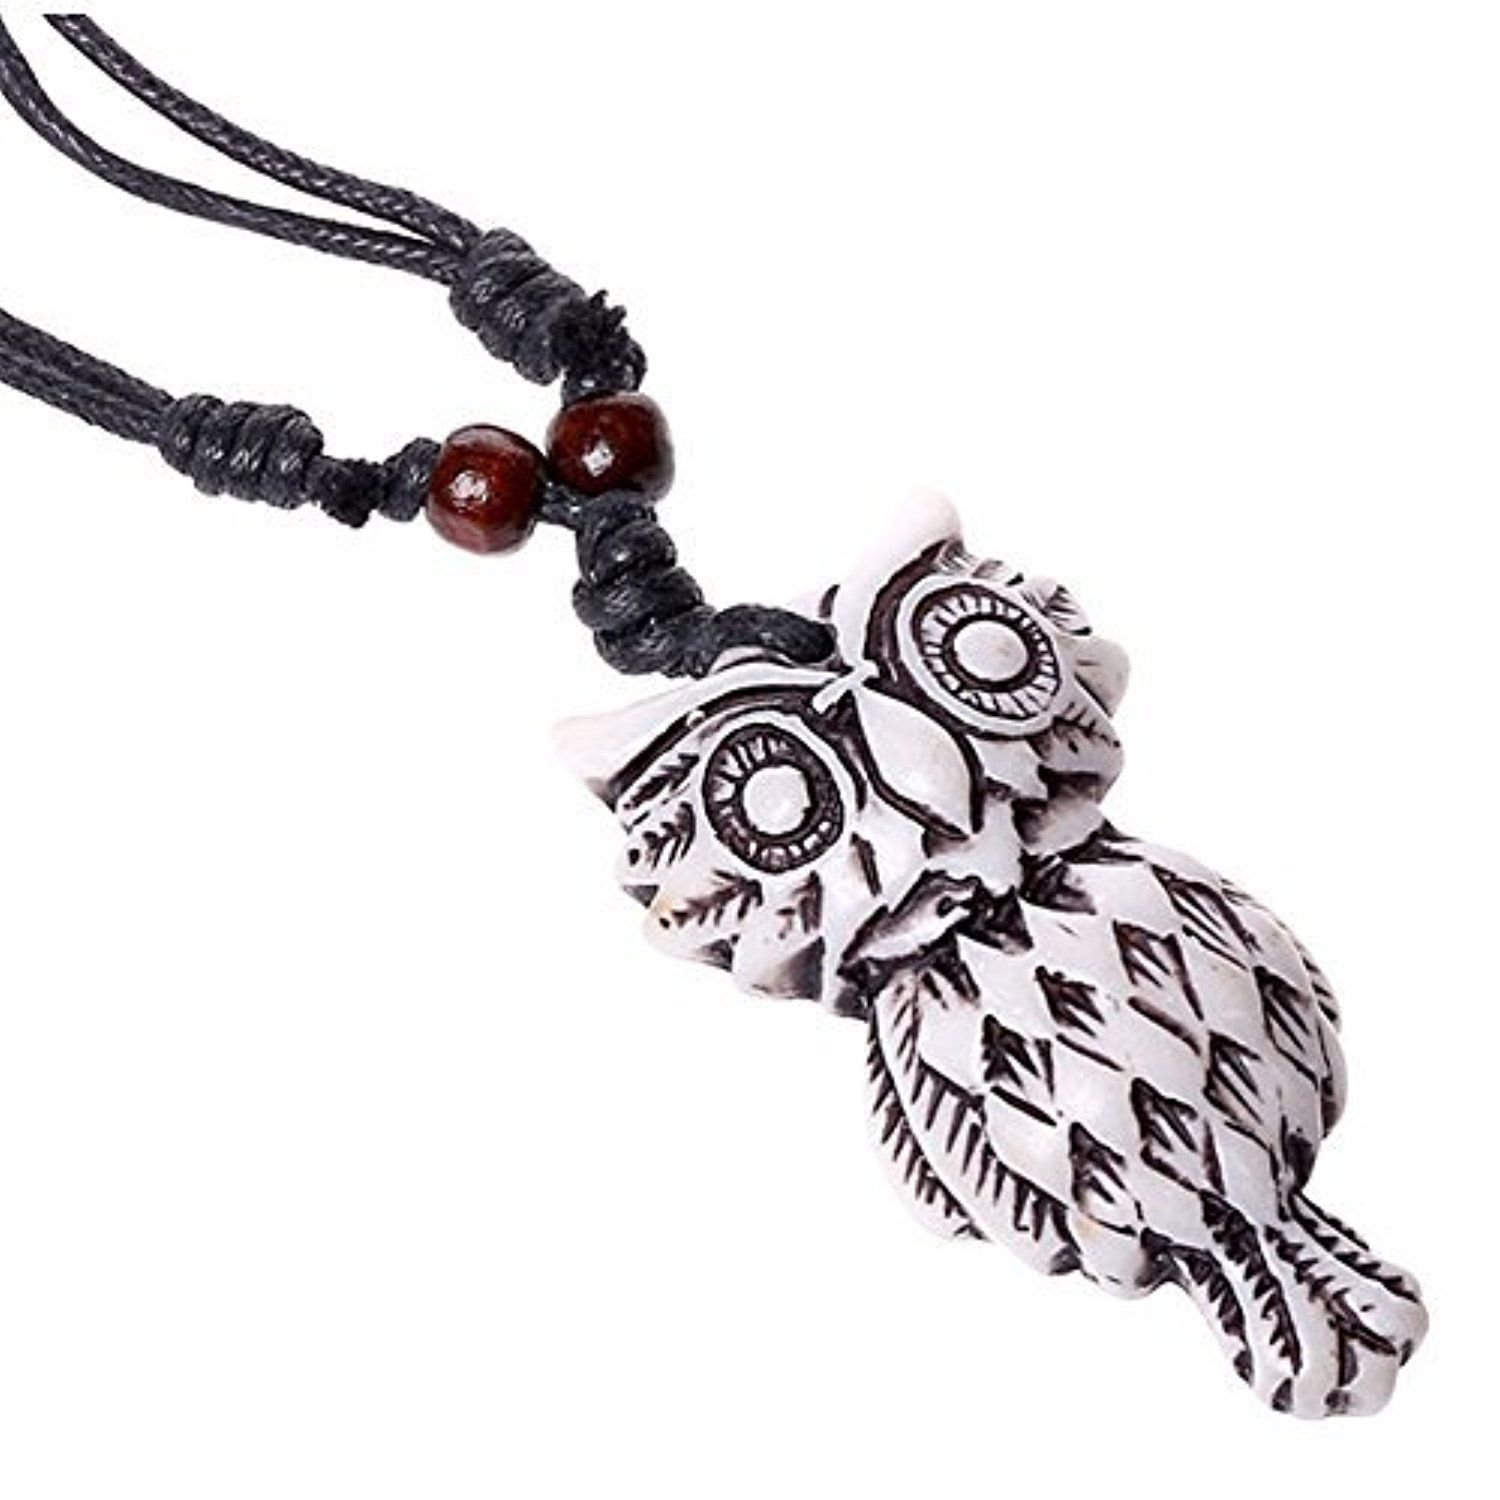 SumBonum Jewelry Mens Womens Resin Wax Rope Necklace, Adjustable Vintage Beads Owl Pendant Necklace, Black White by SumBonum -- Awesome products selected by Anna Churchill